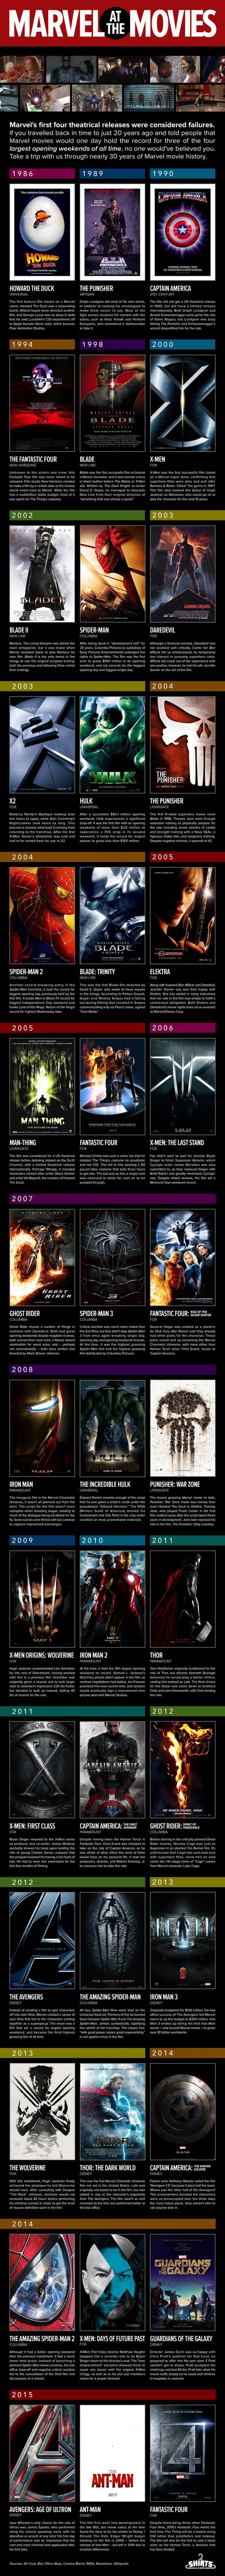 This Marvel movie history infographic comes from Shirts.com. There's a bit  of interesting information that comes along with each movie listed. I did  my own Marvel movie history breakdown earlier this year, with lots of other  details. If you want to check them out. Marvel's Early Movie History - 1944  to 1990, Marvel's Early Movie History - 1994 to 2003 and Marvel Movie  History - 2004 to 2008.